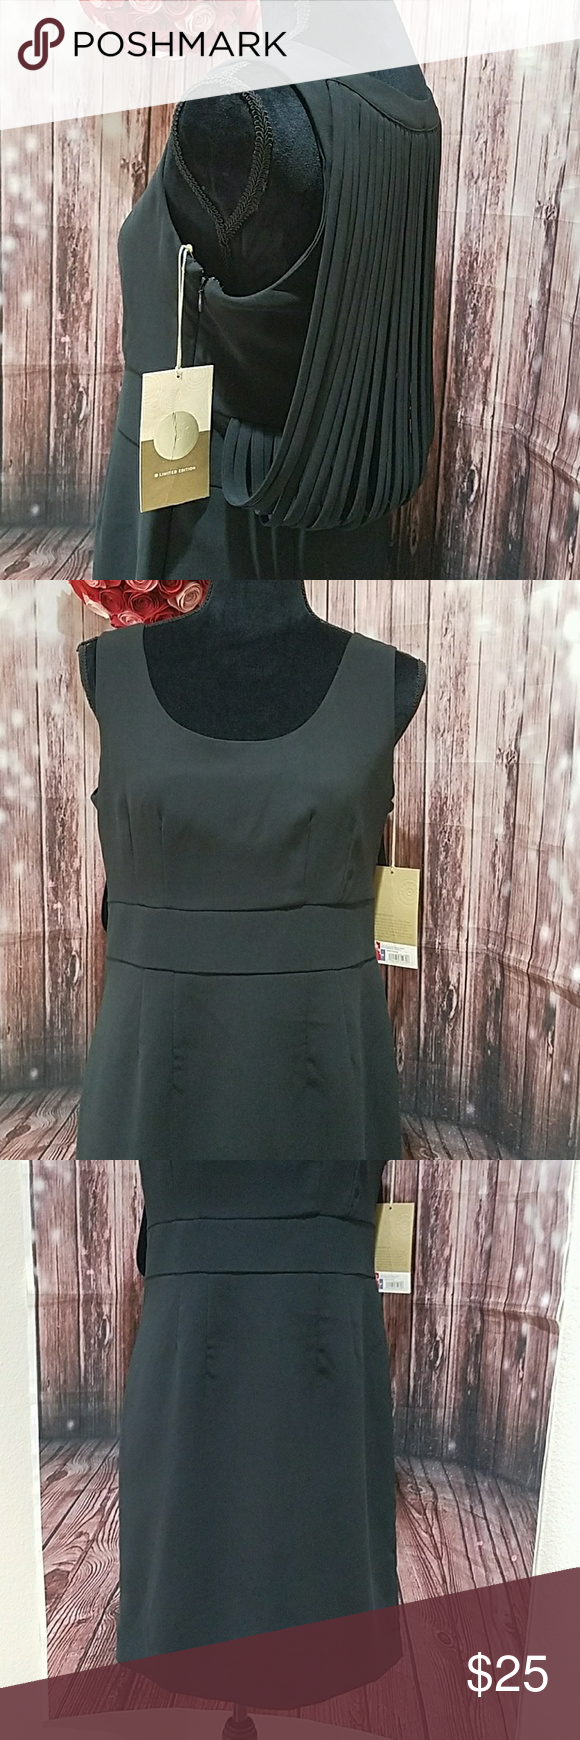 Little Black Dress Target Limited Edition Round Neck Sleeveless Dress With Drapy Back Detailing Lined B Target Dresses Clothes Design Limited Edition Dress [ 1740 x 580 Pixel ]